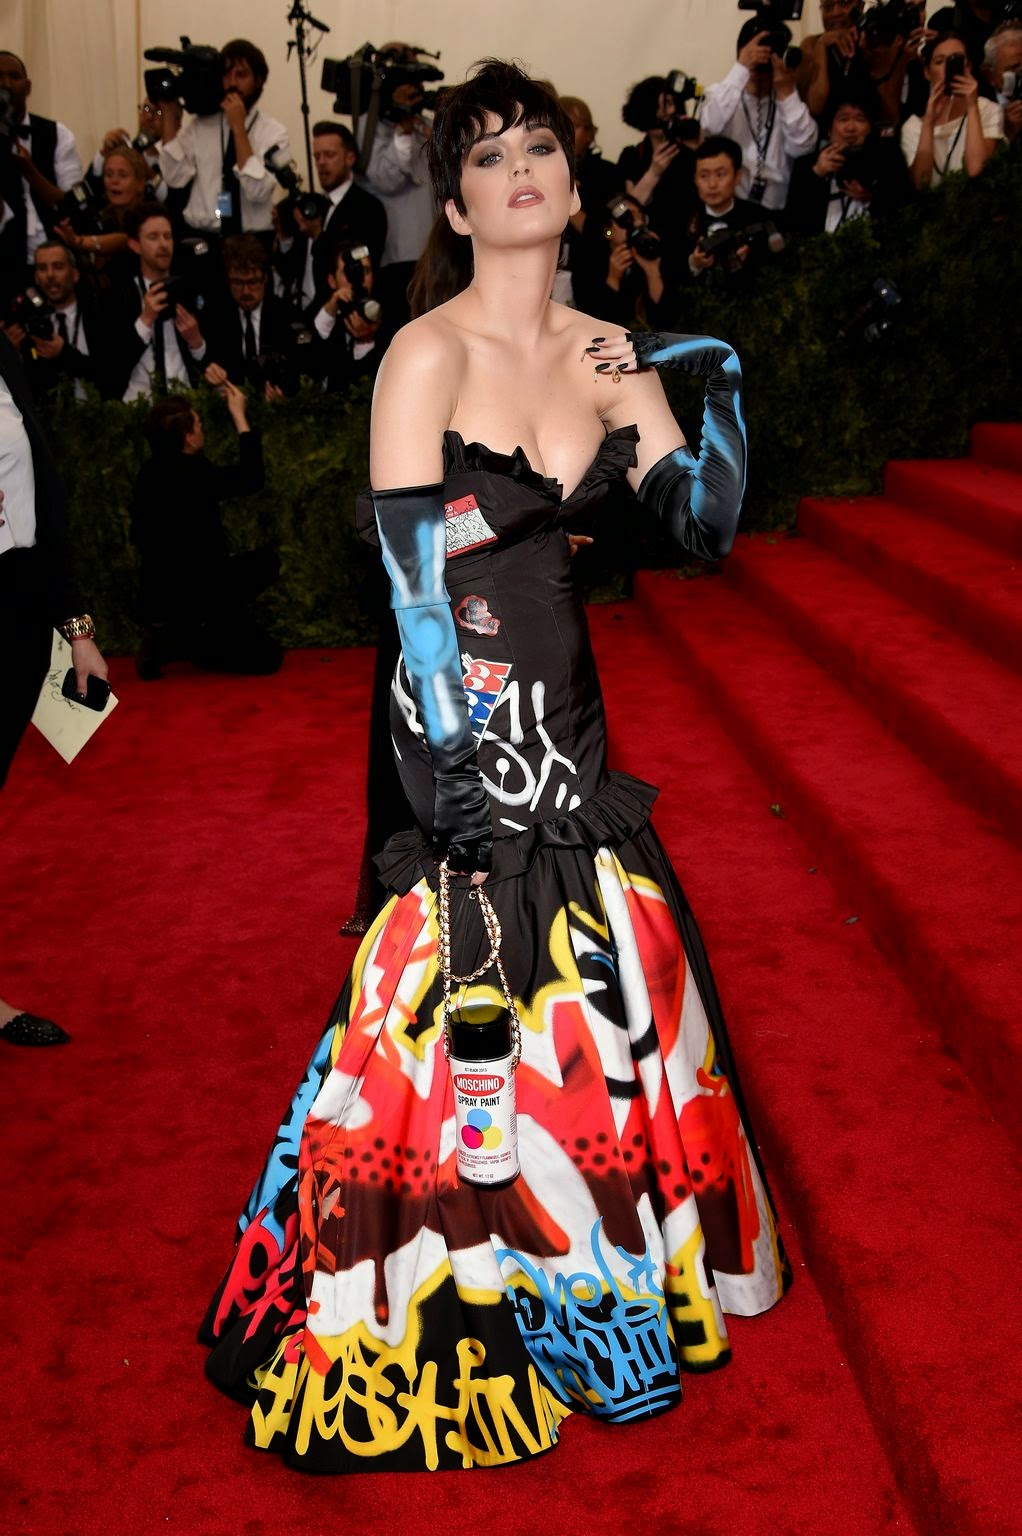 Katy Perry in a strapless Moschino graffiti gown at the 2015 Met Gala in NYC